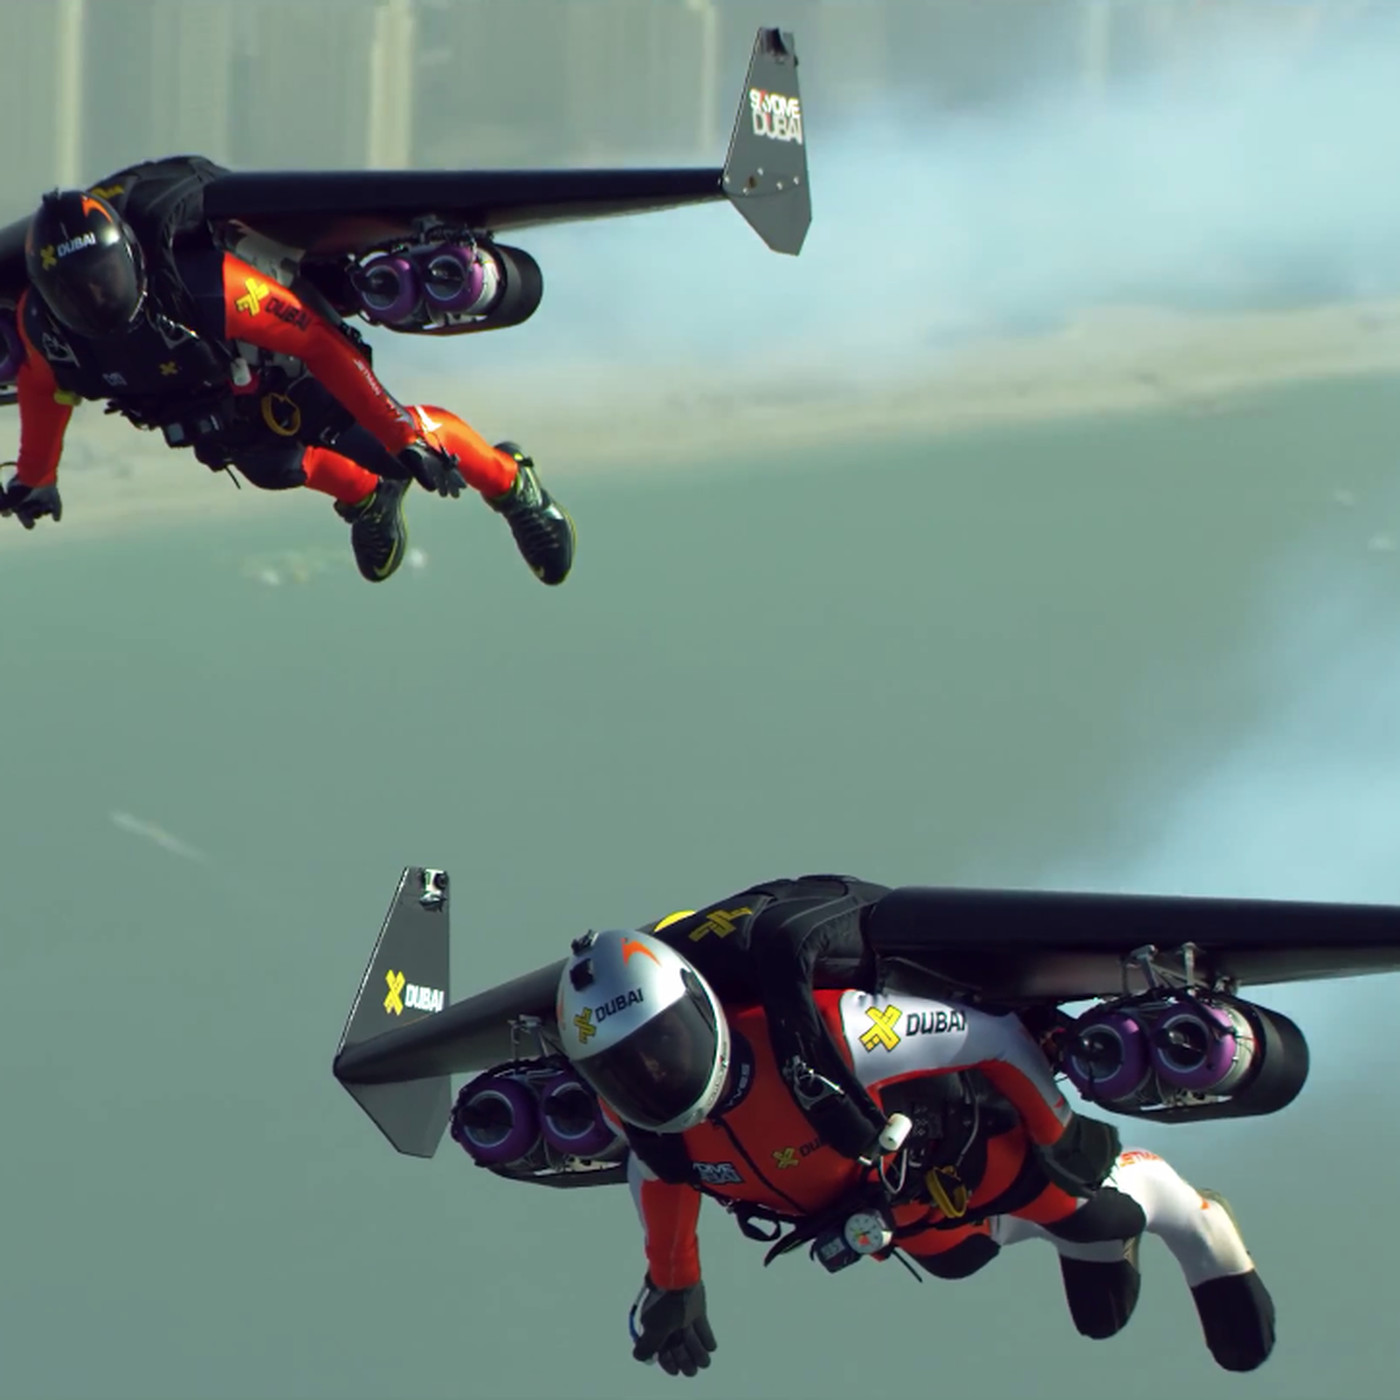 Watch two crazy people fly jetpacks over Dubai in 4K - The Verge